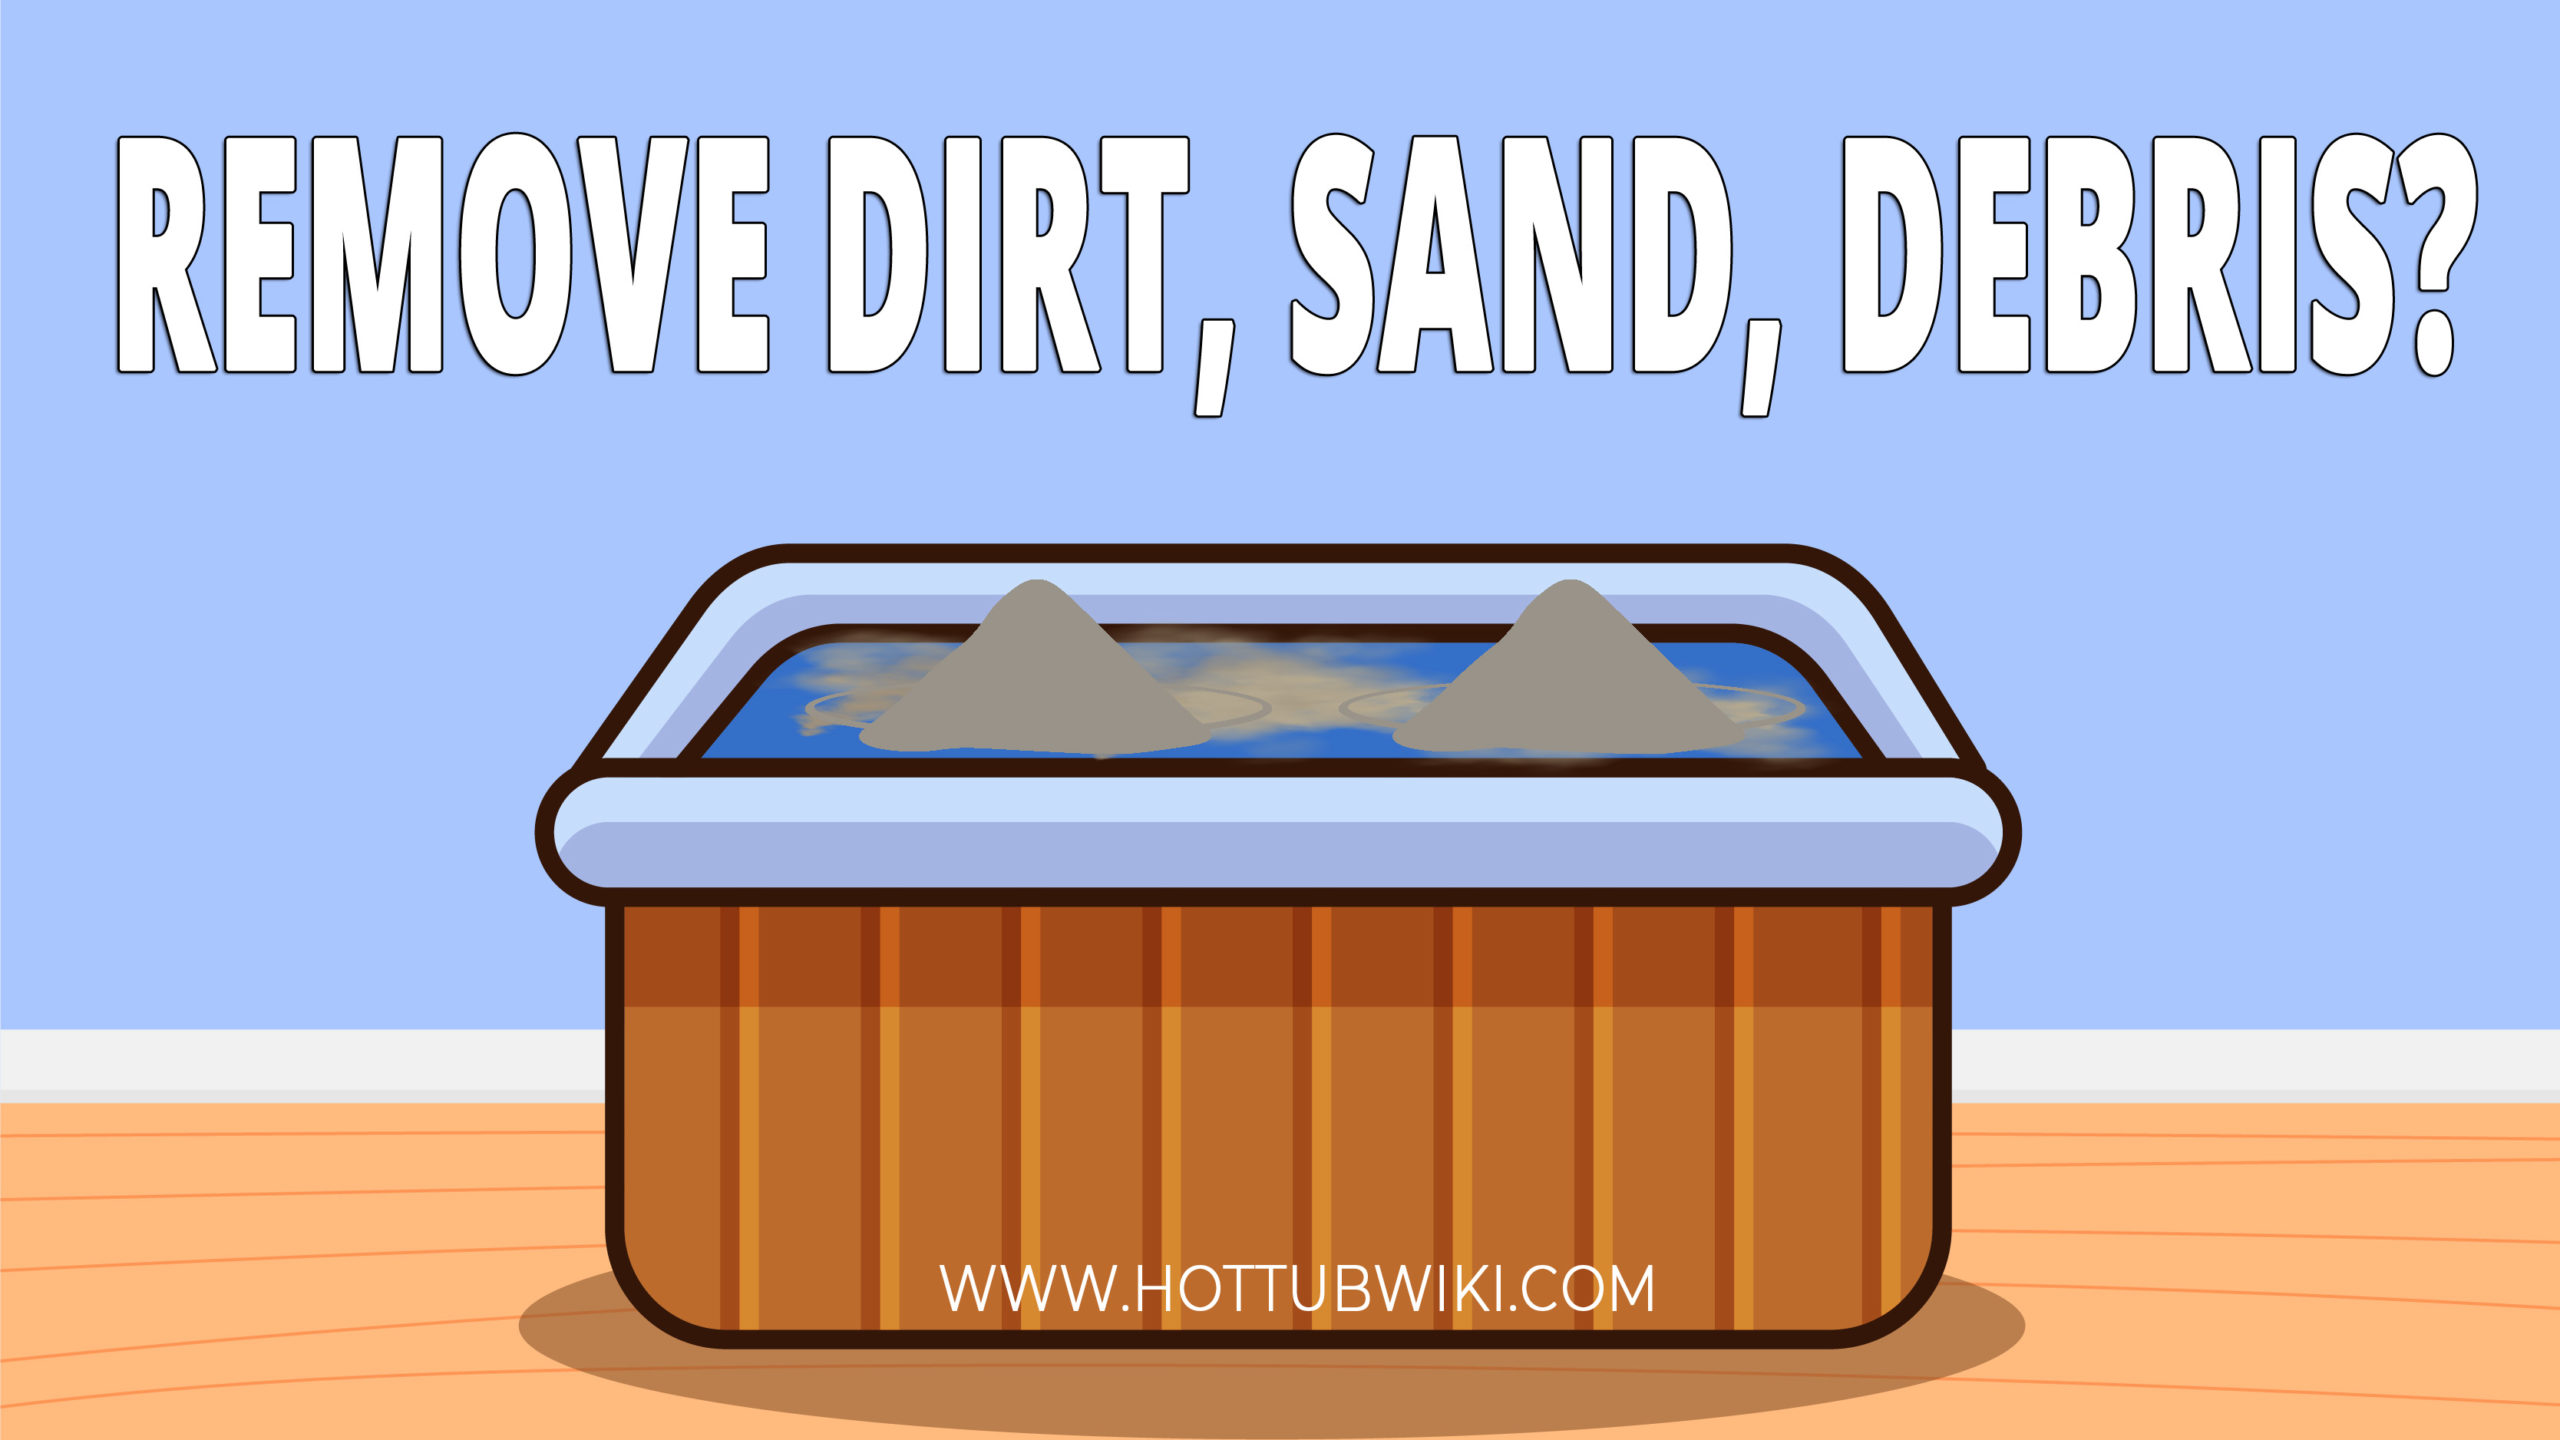 6 Methods To Remove Dirt and Debris From Your Hot Tub